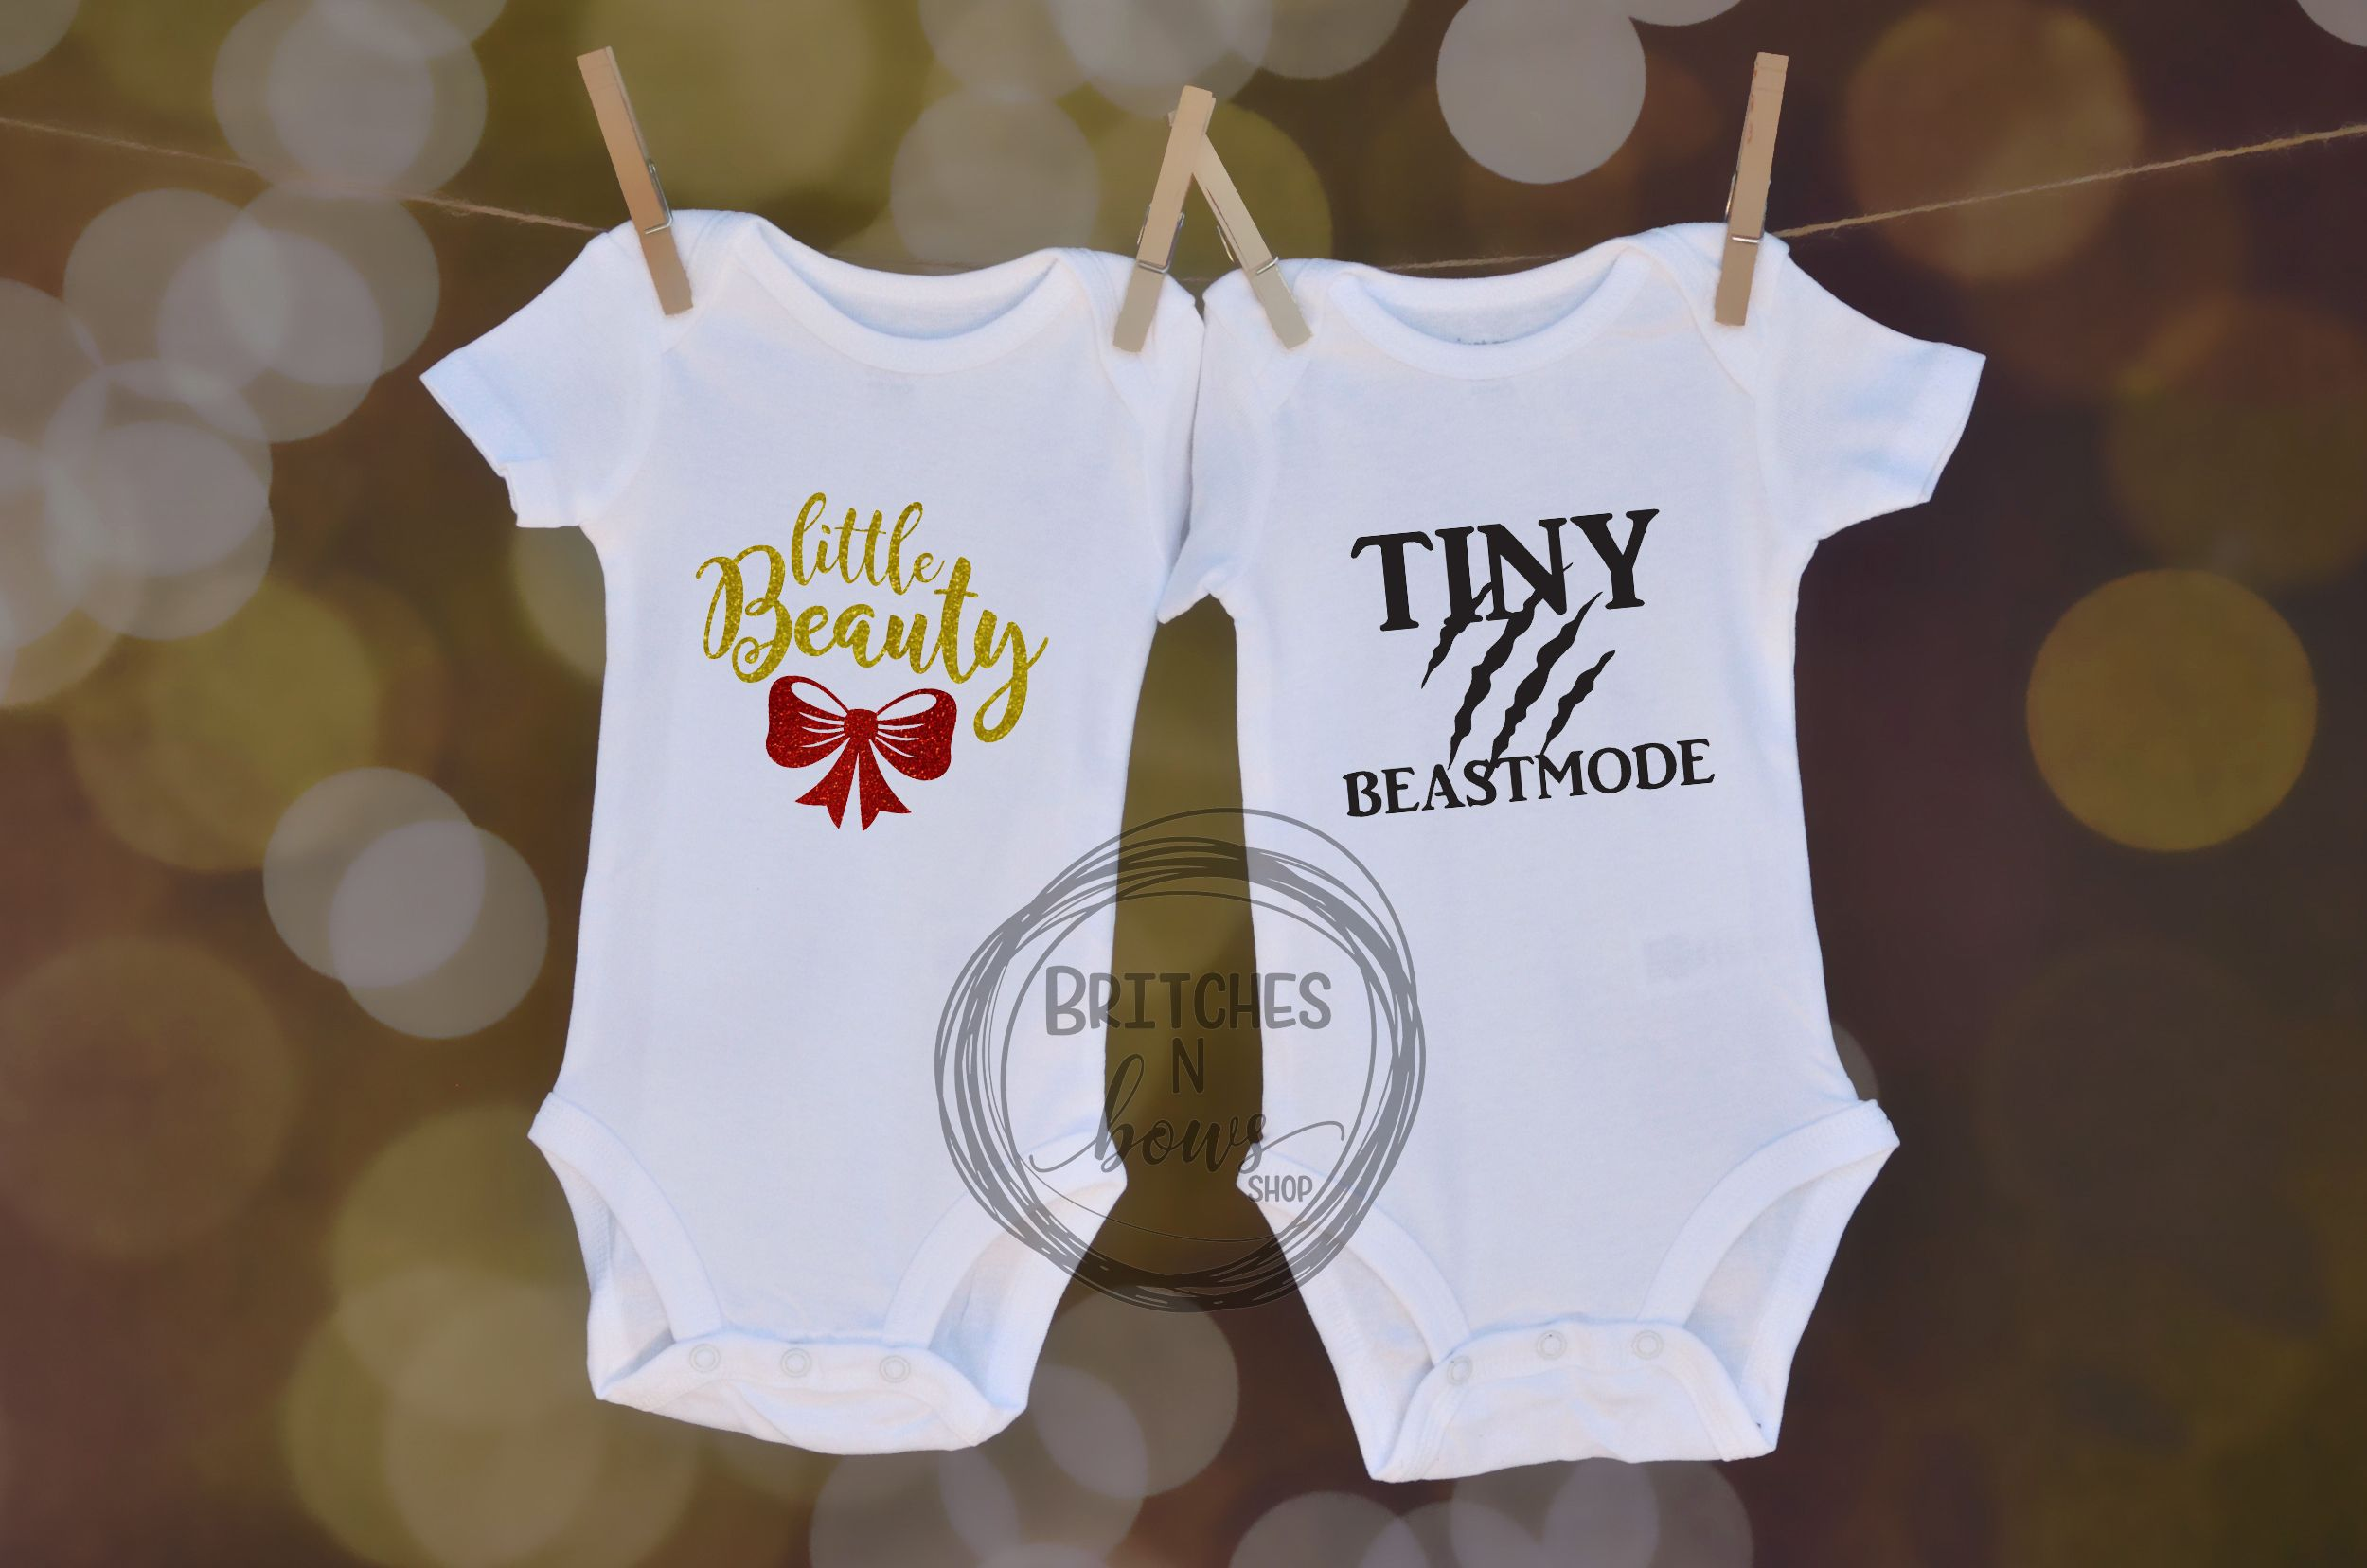 Little Beauty & Tiny BeastMode Set // Baby Apparel, Toddler Shirts, Trendy Baby Clothes, Cute Baby Clothes, Twins, Siblings  www.BritchesNBowsShop.com  www.BritchesNBowsShop.etsy.com